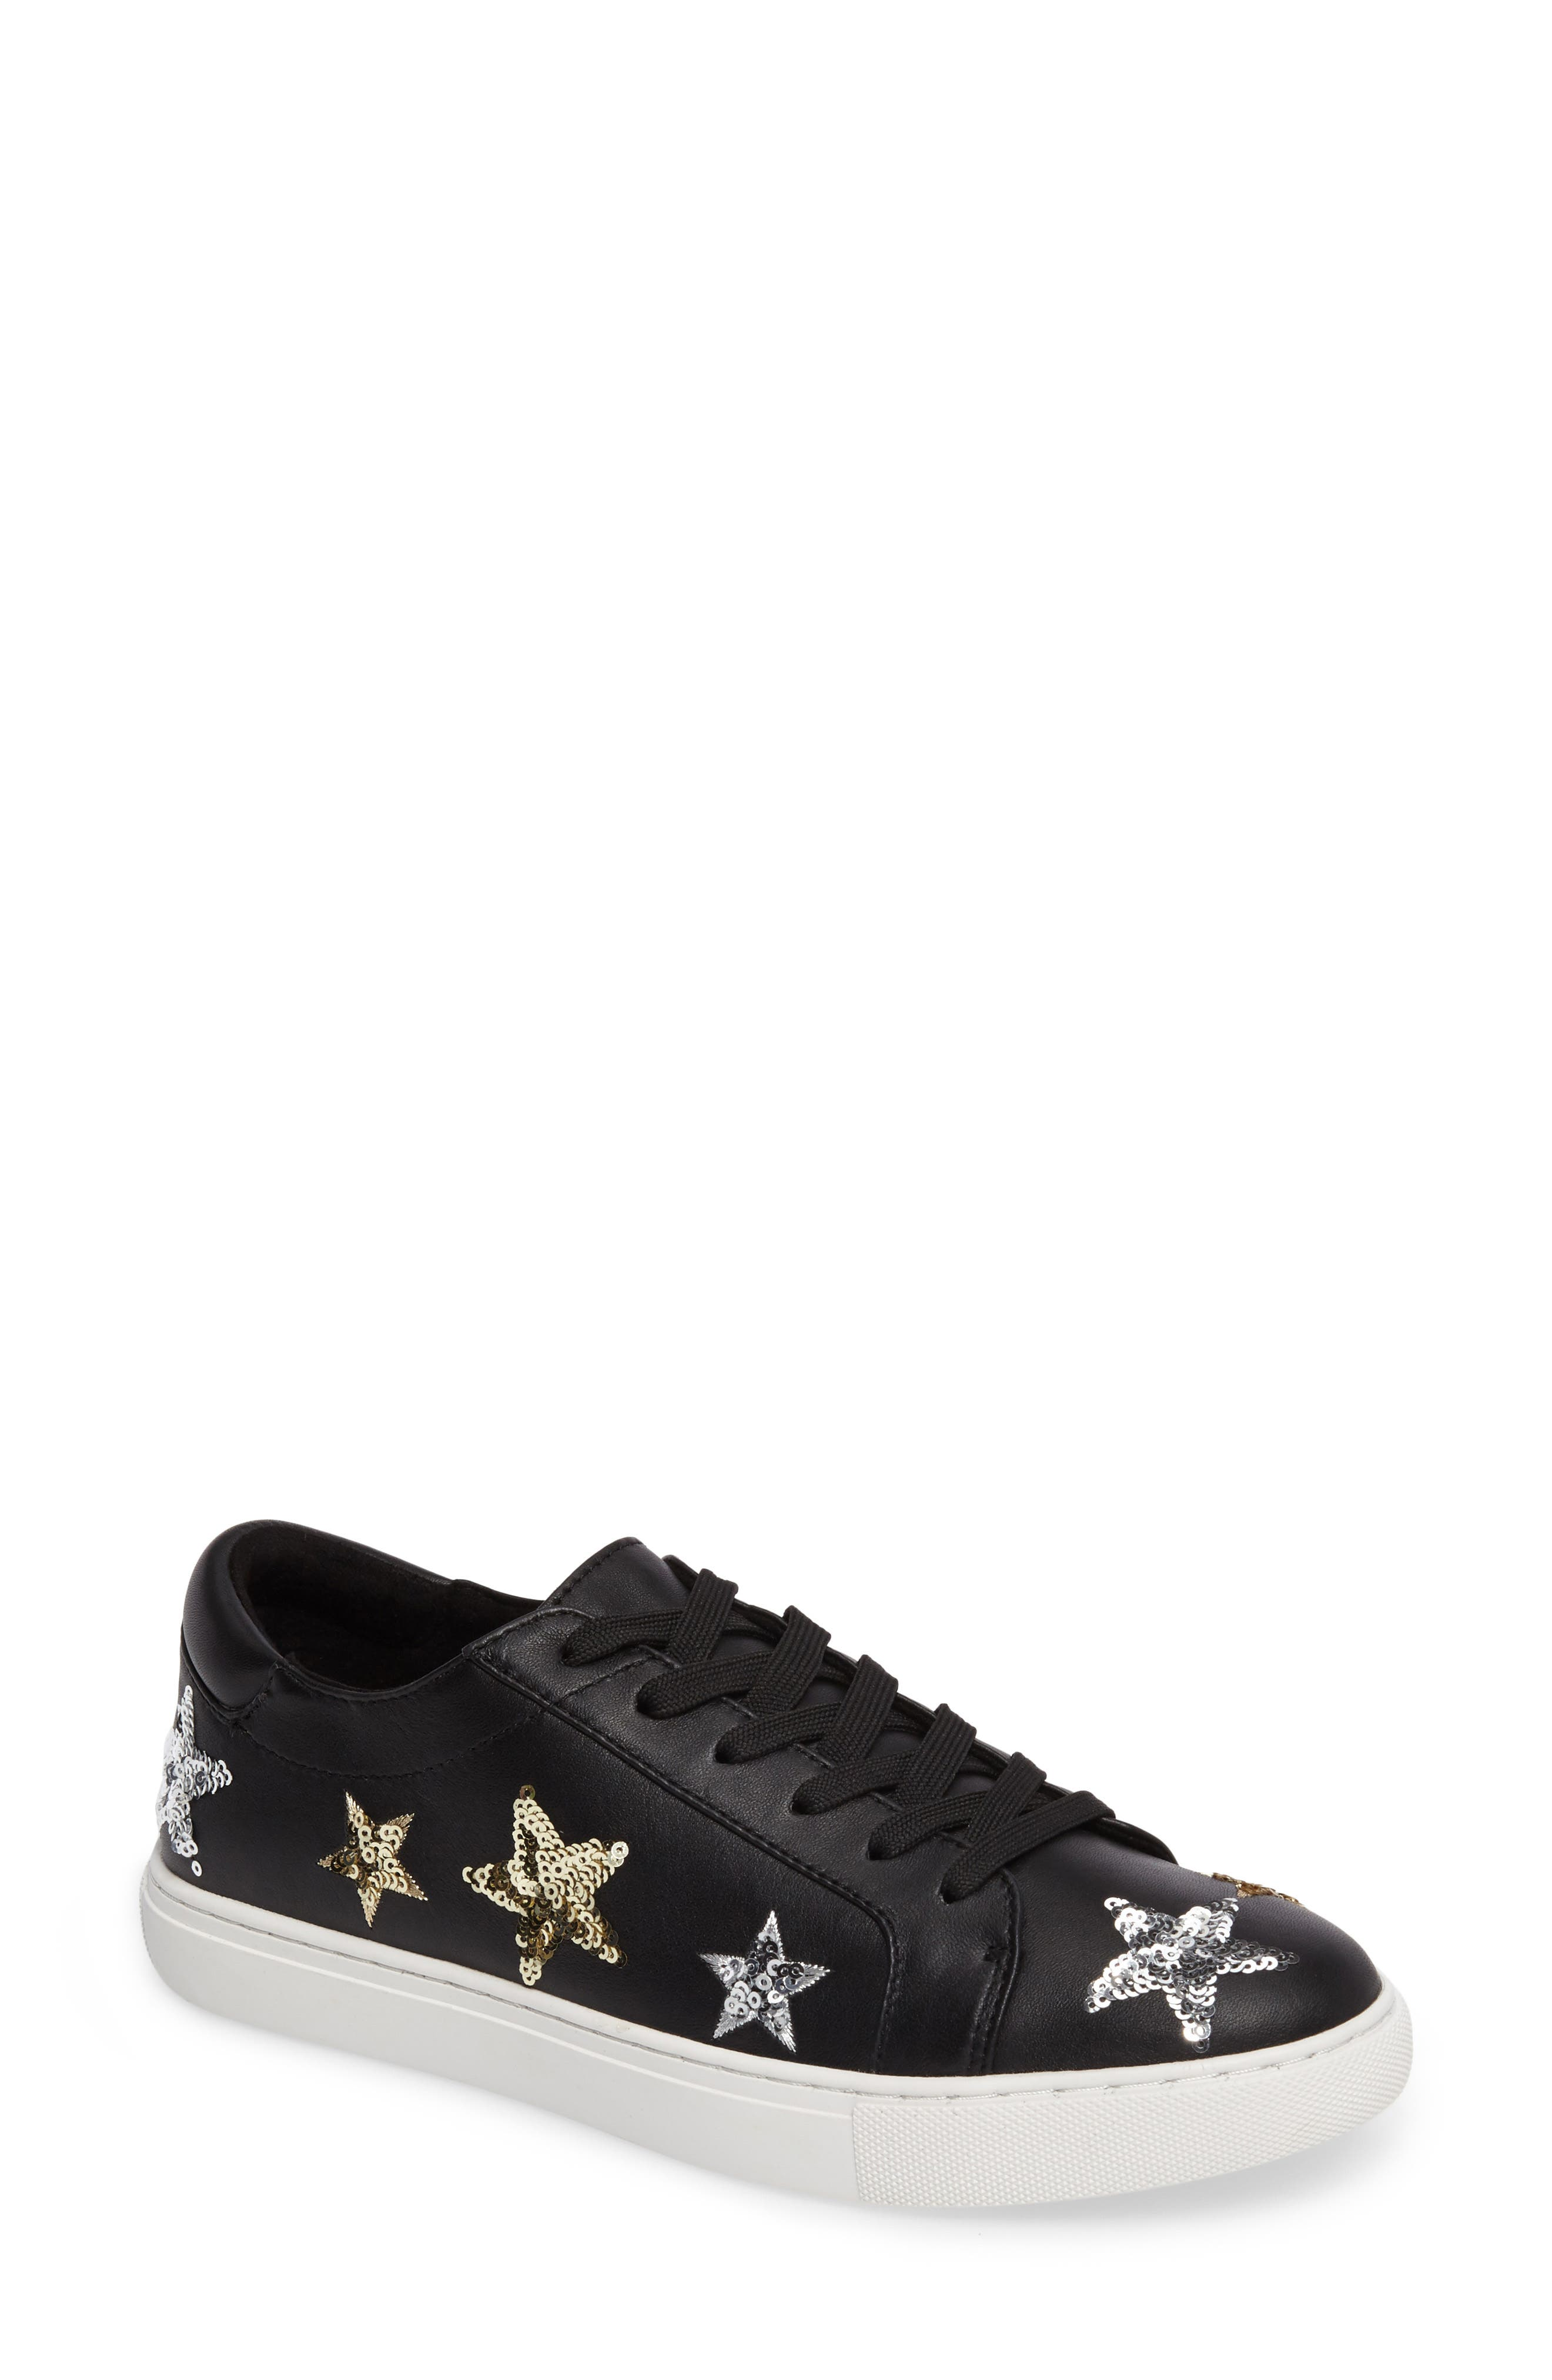 Main Image - Kenneth Cole New York Kam Star Sneaker (Women)